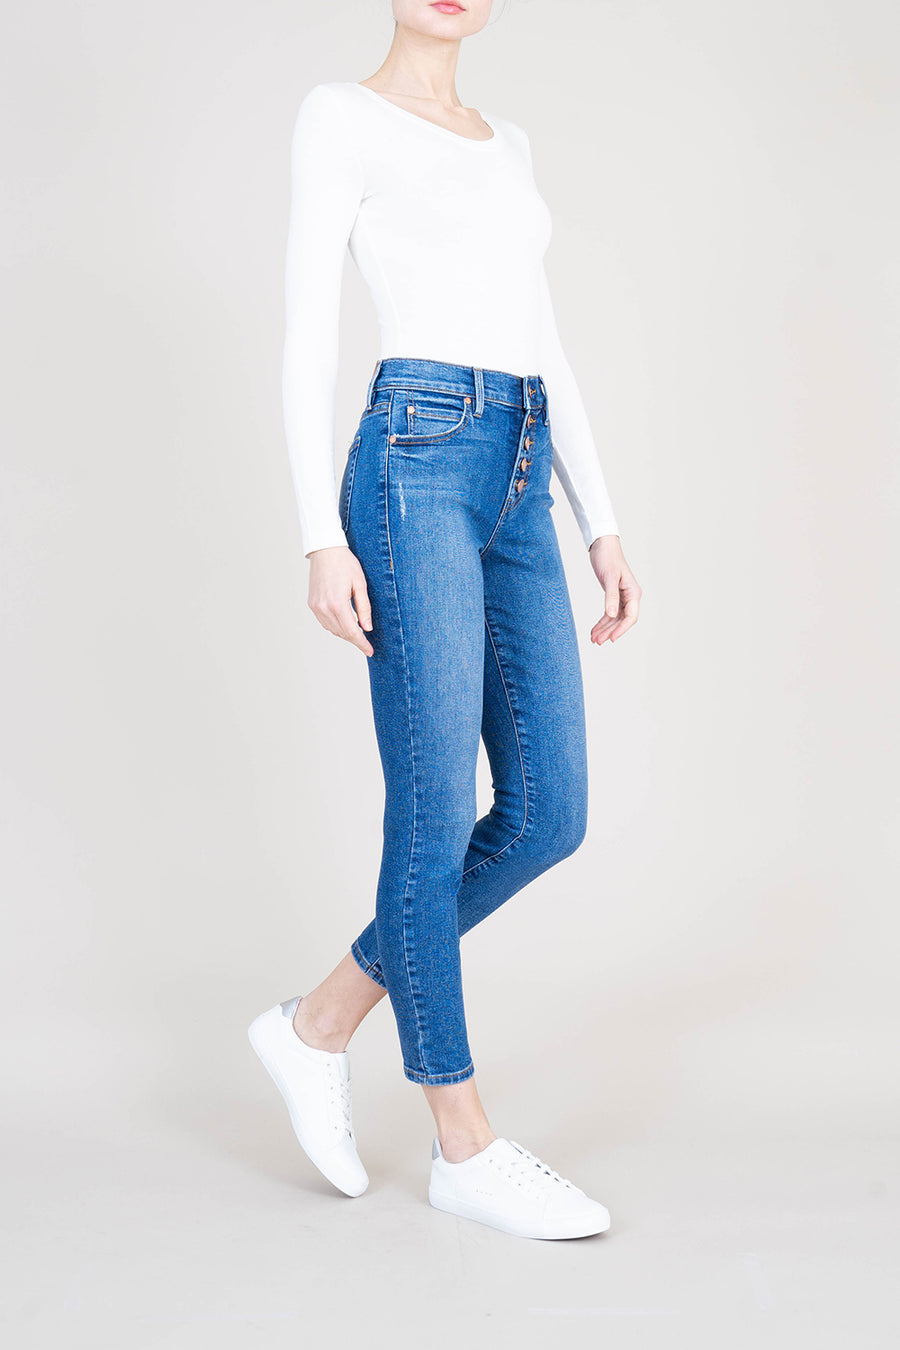 Heidi Exposed Button Fly - level99jeans